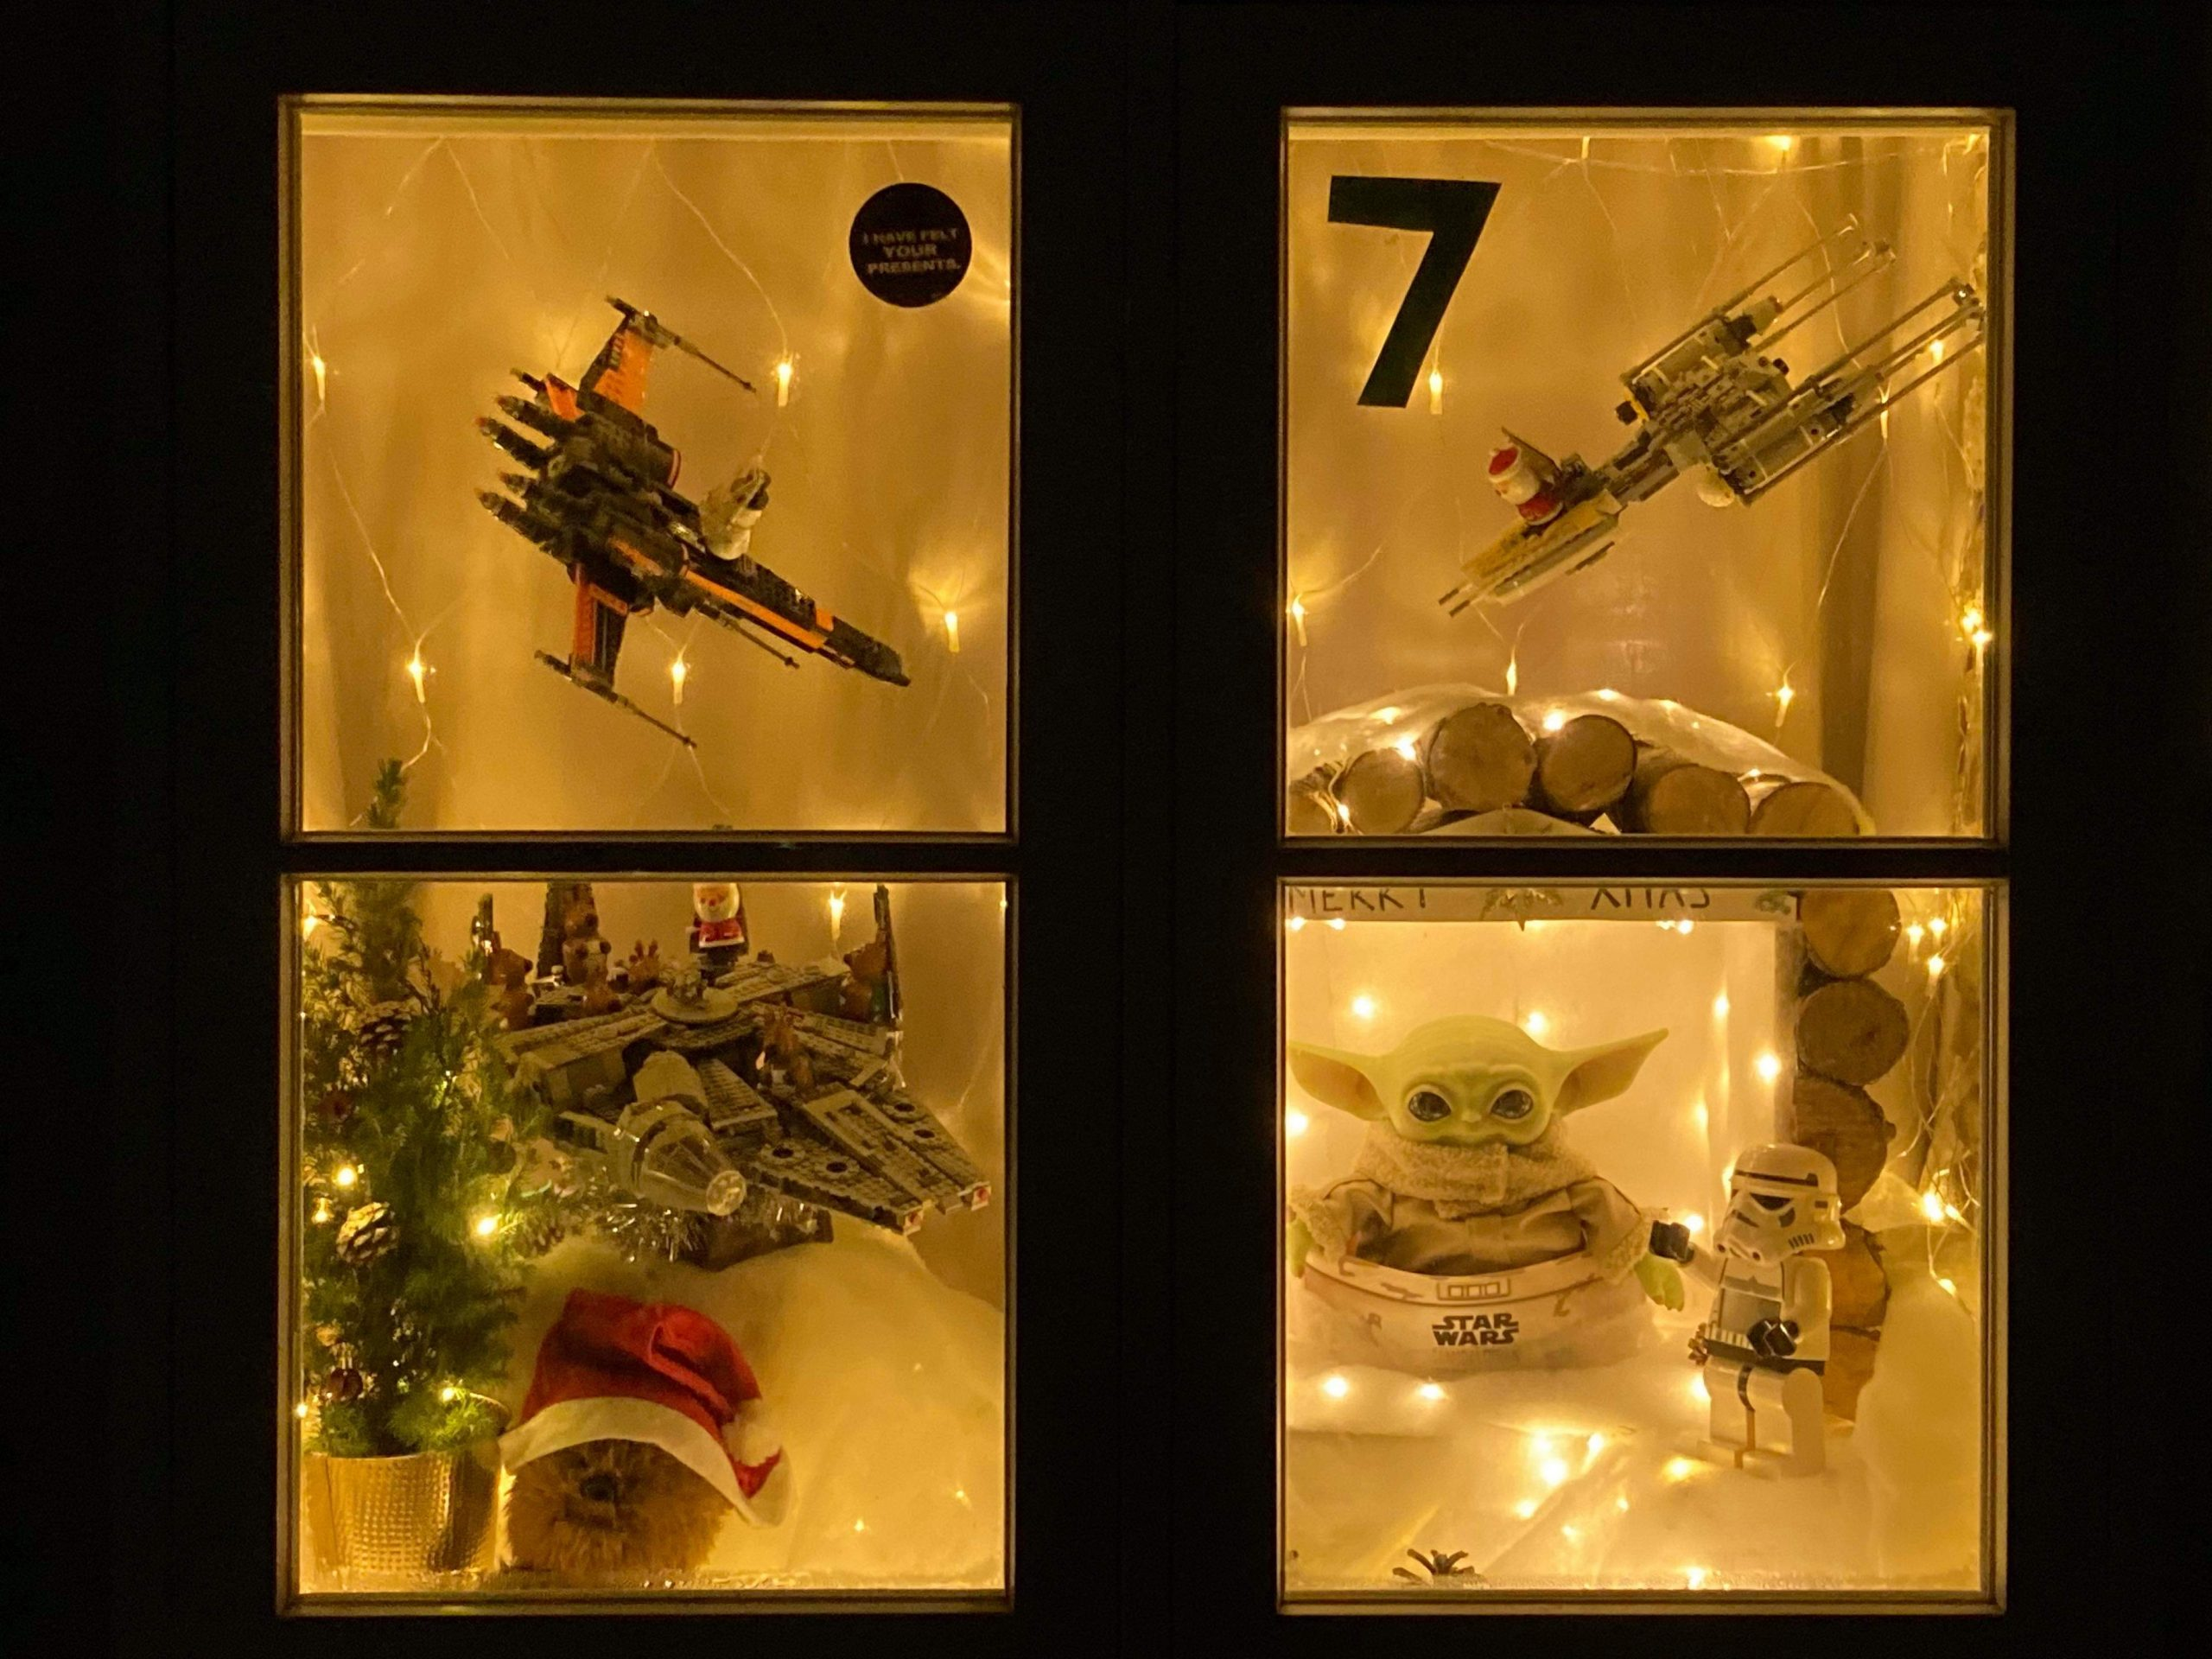 Community Display Joint 3rd Place - Helpston Village Advent Trail